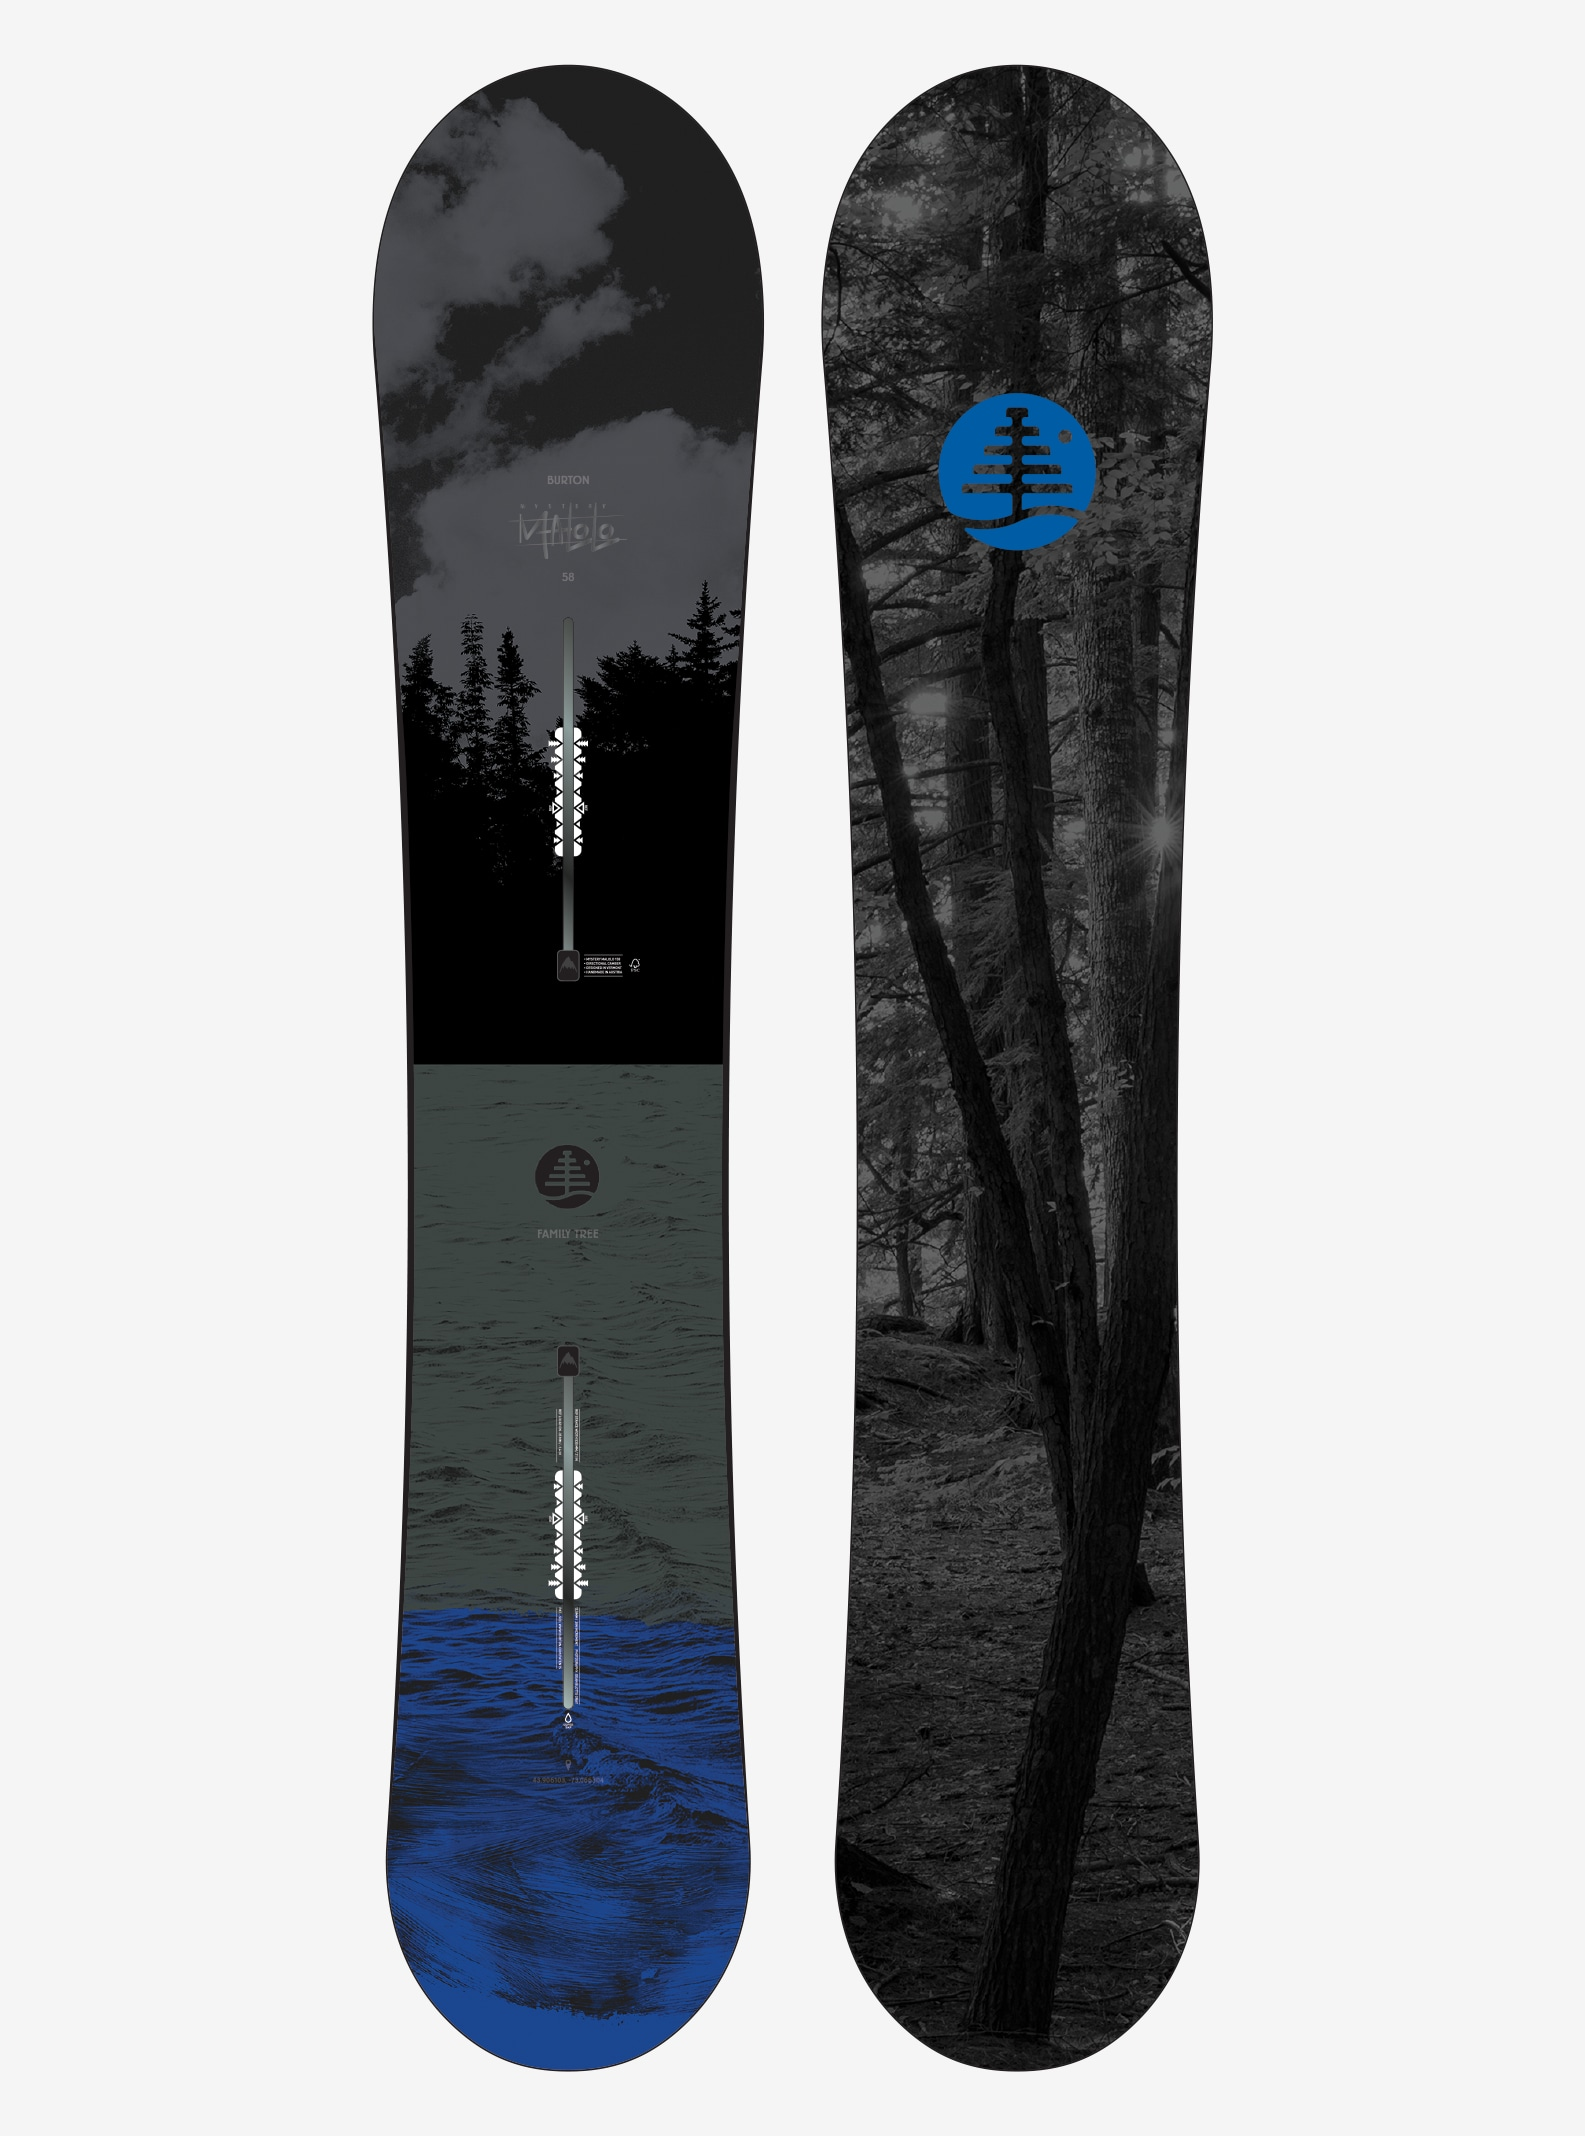 Men's Burton Family Tree Mystery Malolo Snowboard shown in 158